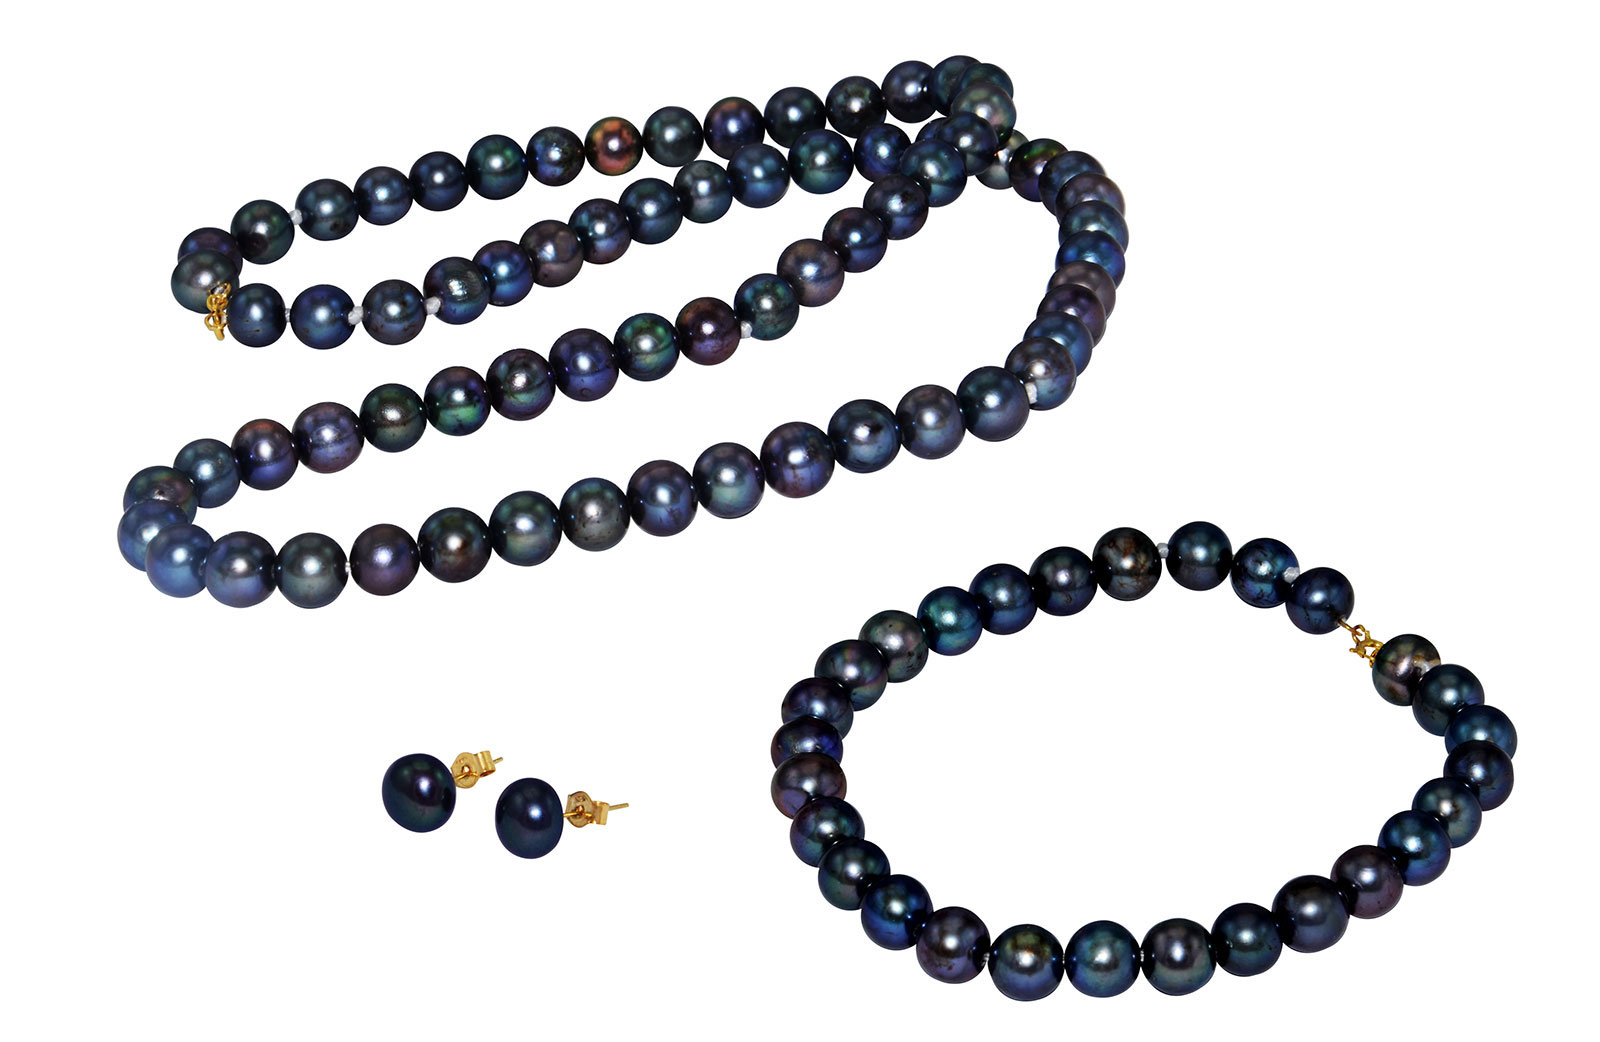 Vera Perla 18K Gold  6-7mm Black Pearl Strand Jewelry Set